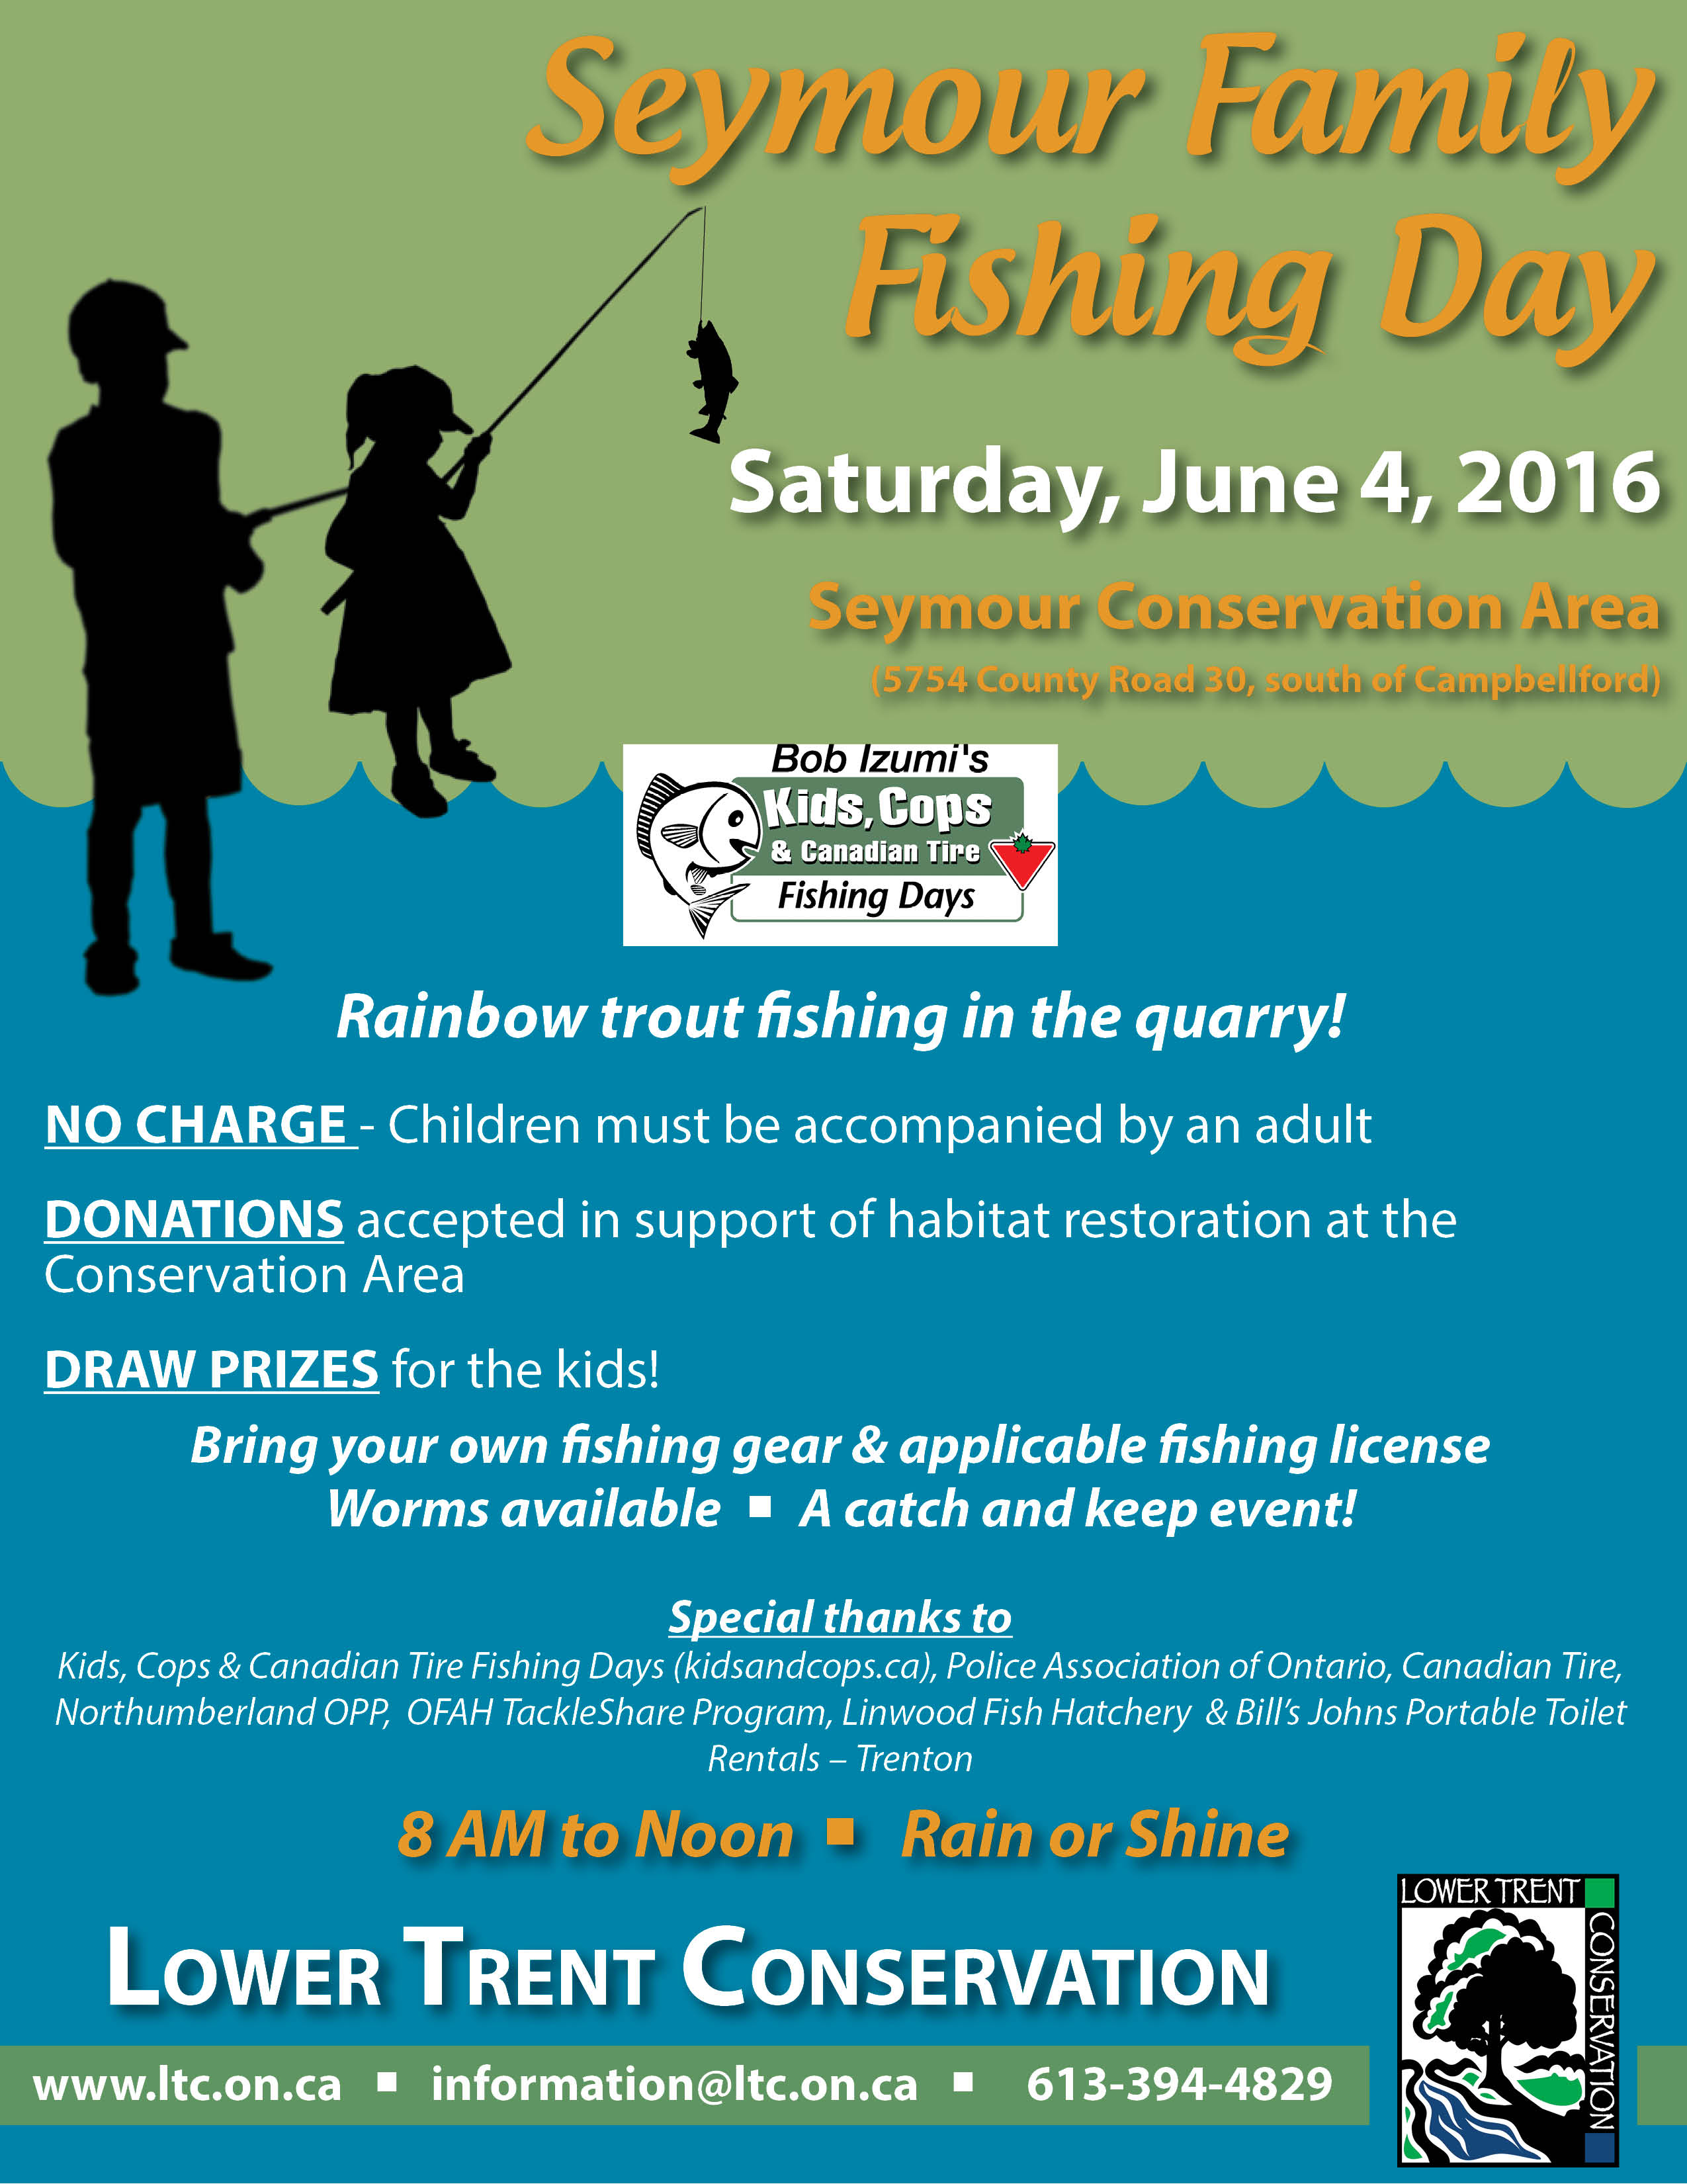 Seymour Family Fishing Day - Bay of Quinte Tourism